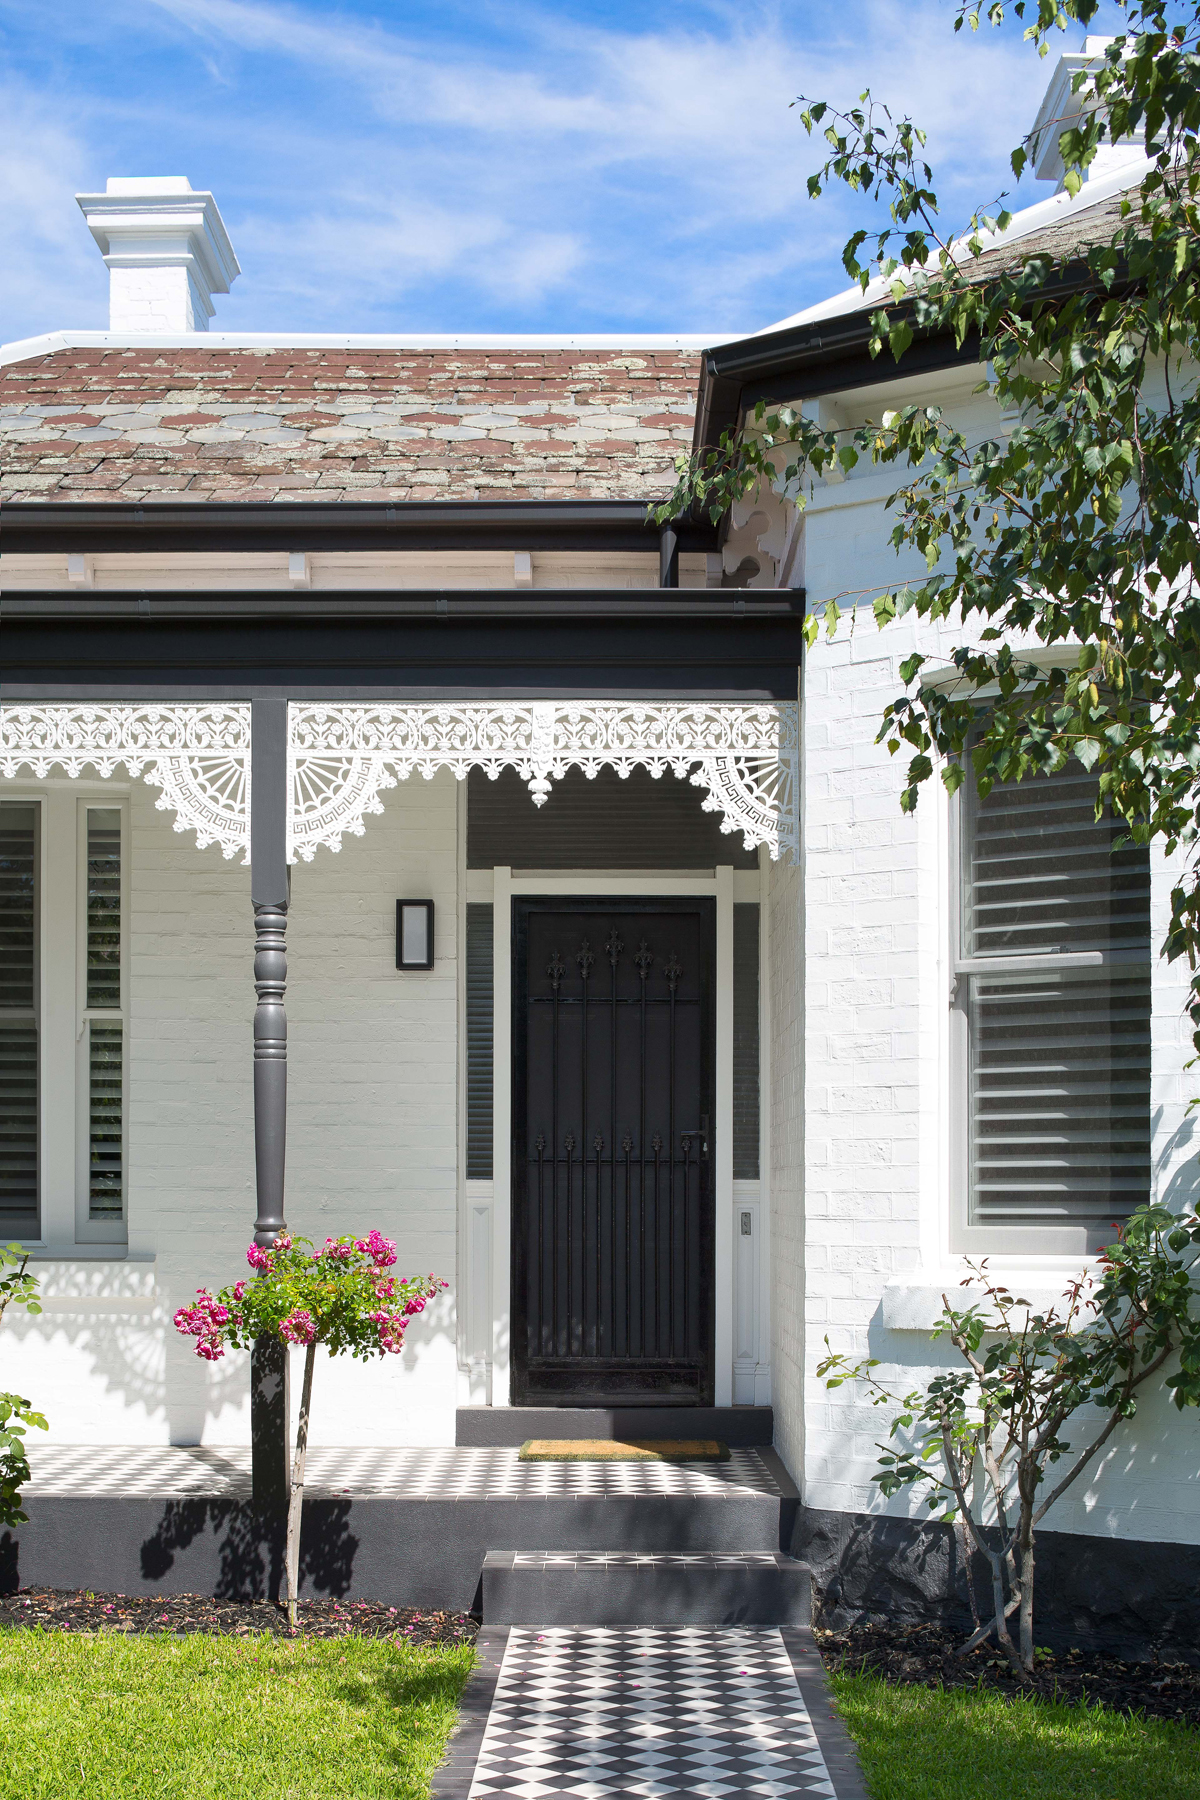 Front image of a heritage home